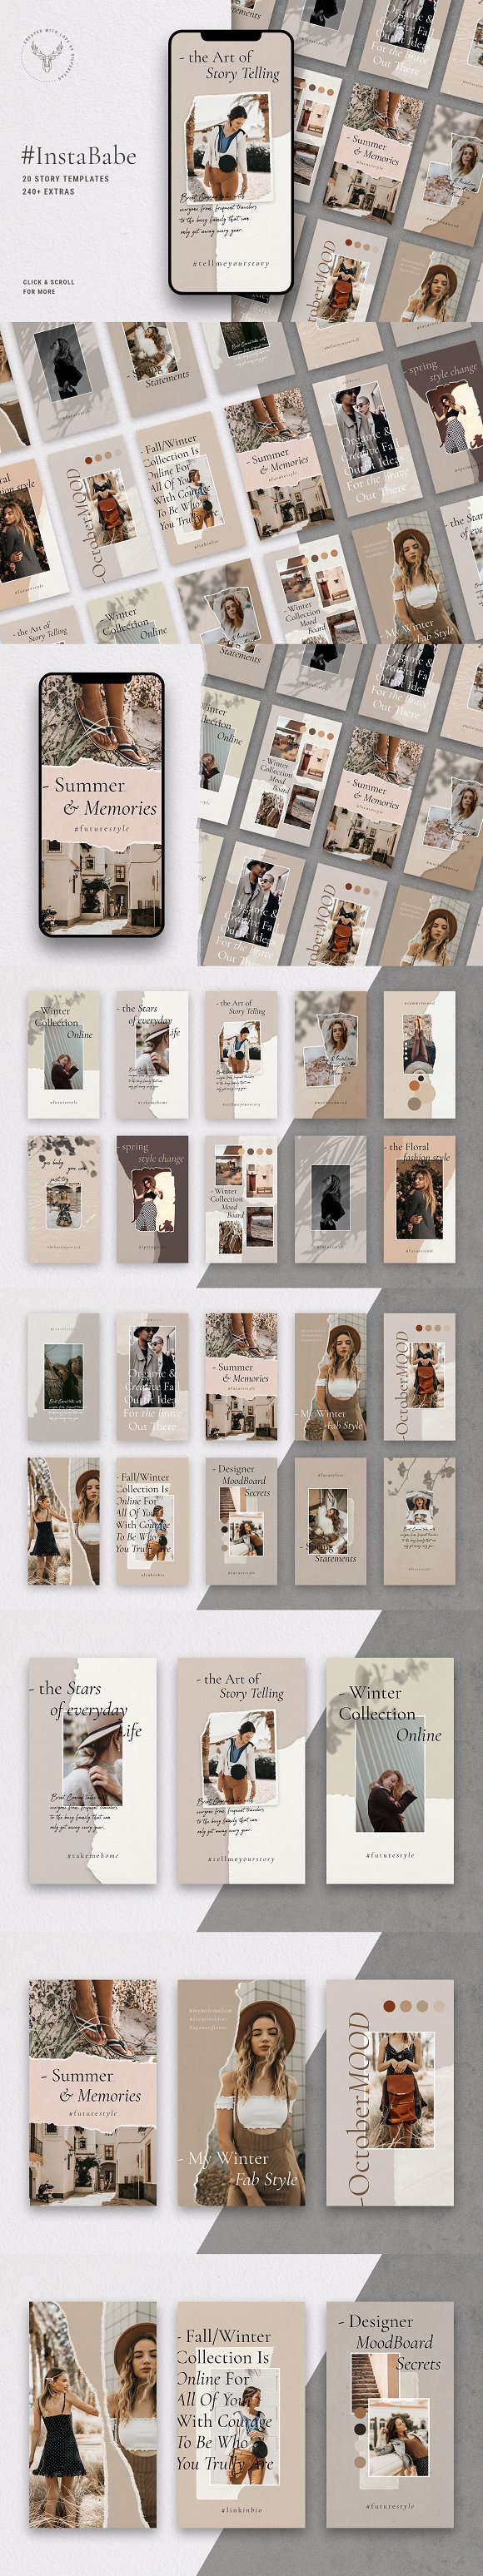 Ultimate Instagram Bundle + Updates in Instagram Templates - product preview 2